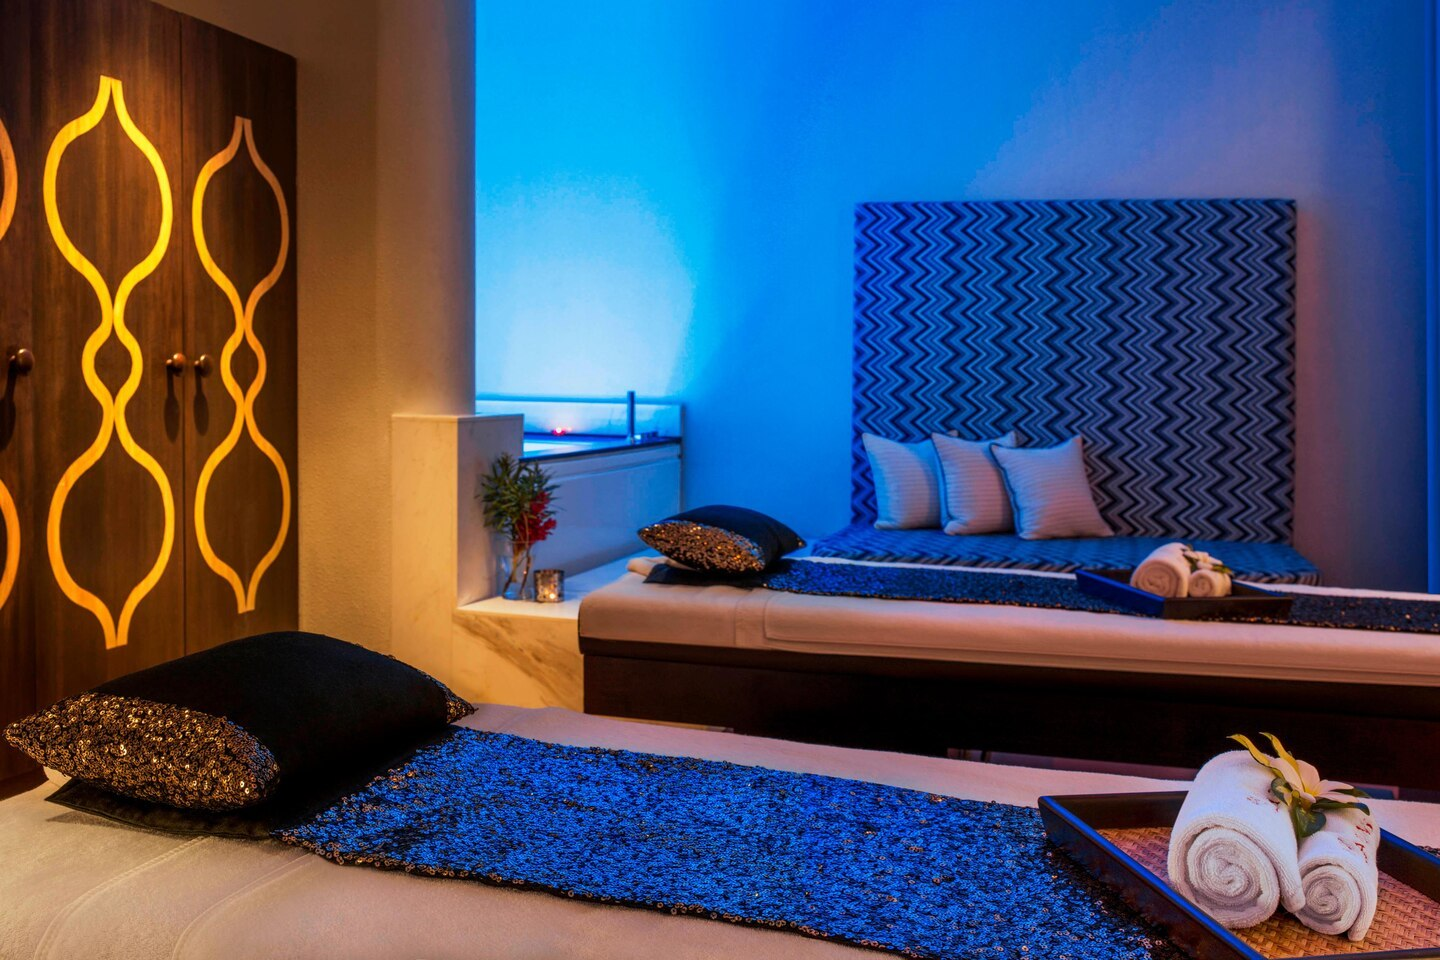 goiwh-spa-room-3539-hor-clsc